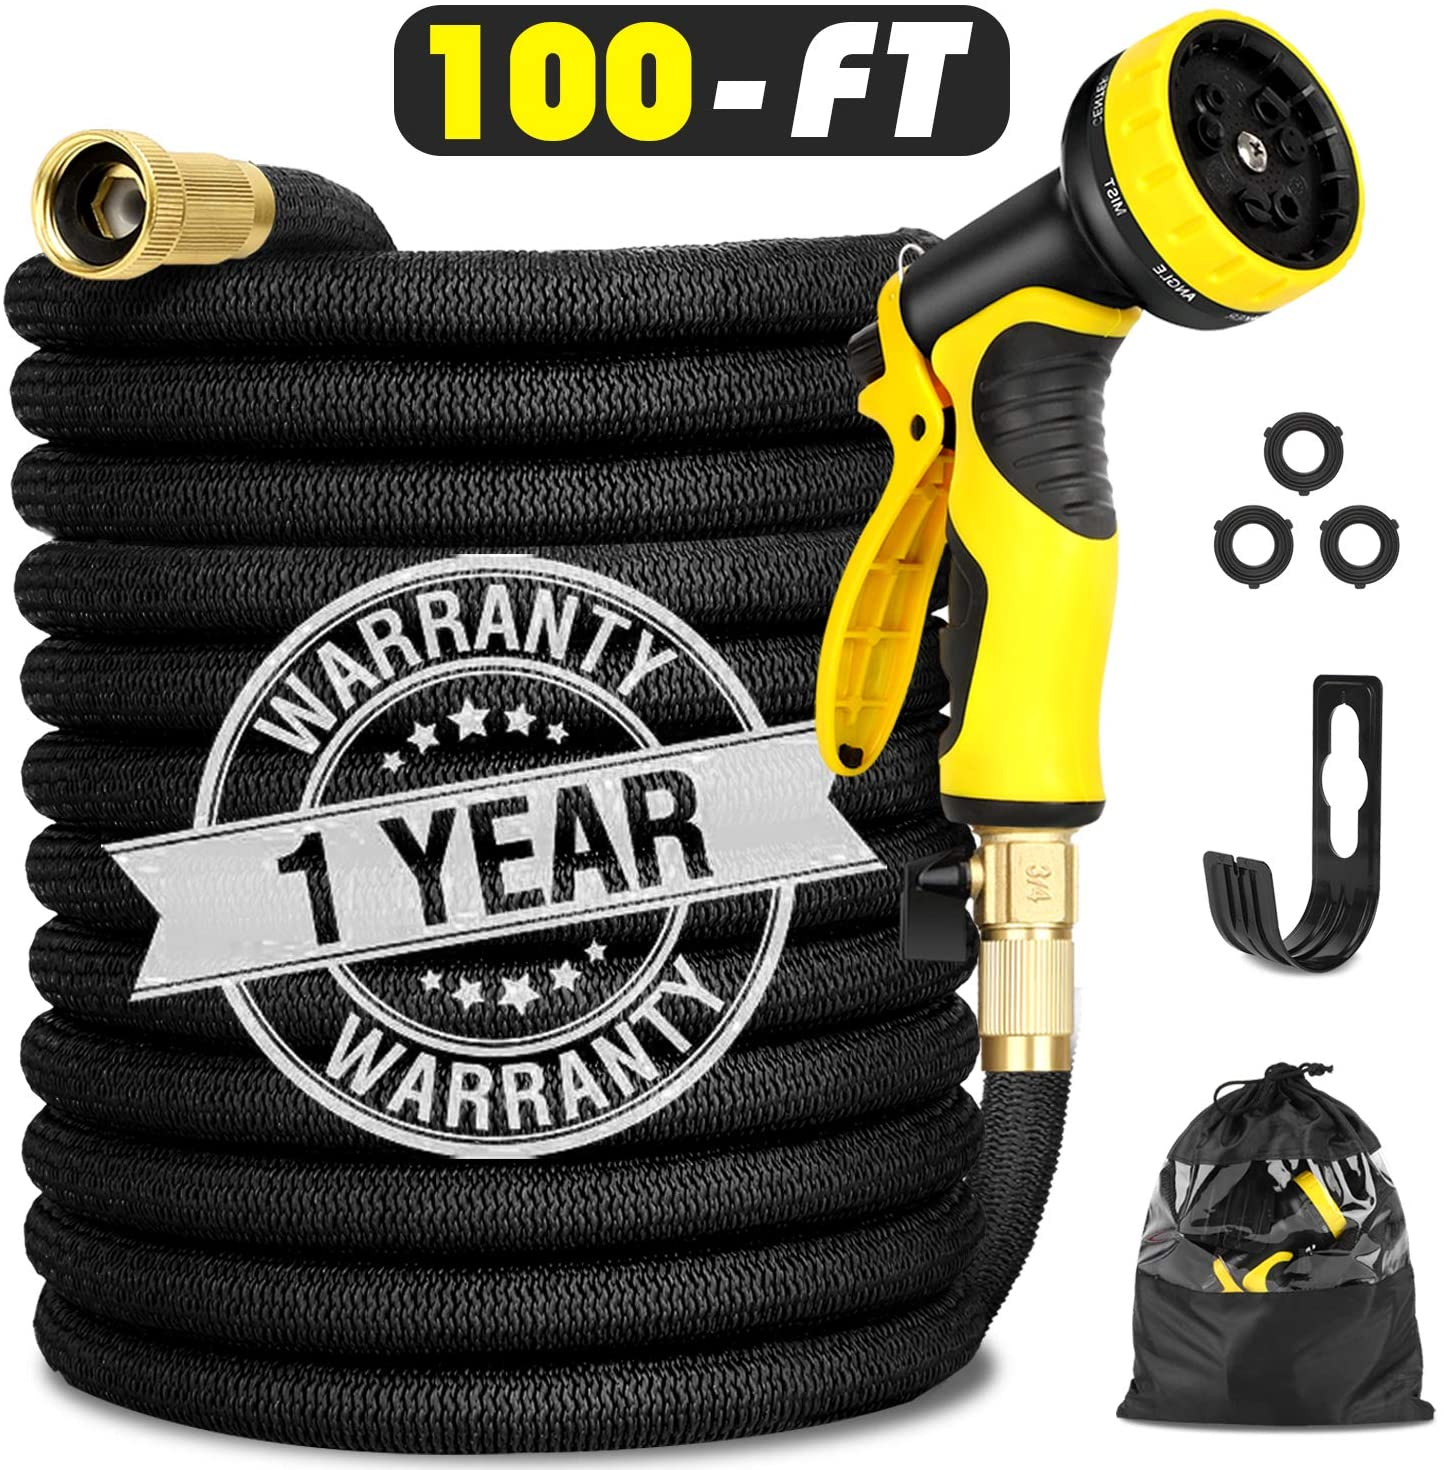 """Garden Hose Expandable 100FT, Flexible Water Hose with Powerful Nozzle Spray, Car Wash Hose with Good Pressure, Expanding hose with 3/4"""" Brass Connector, Hose with Metal 9 Function Spray NozzleStorage"""